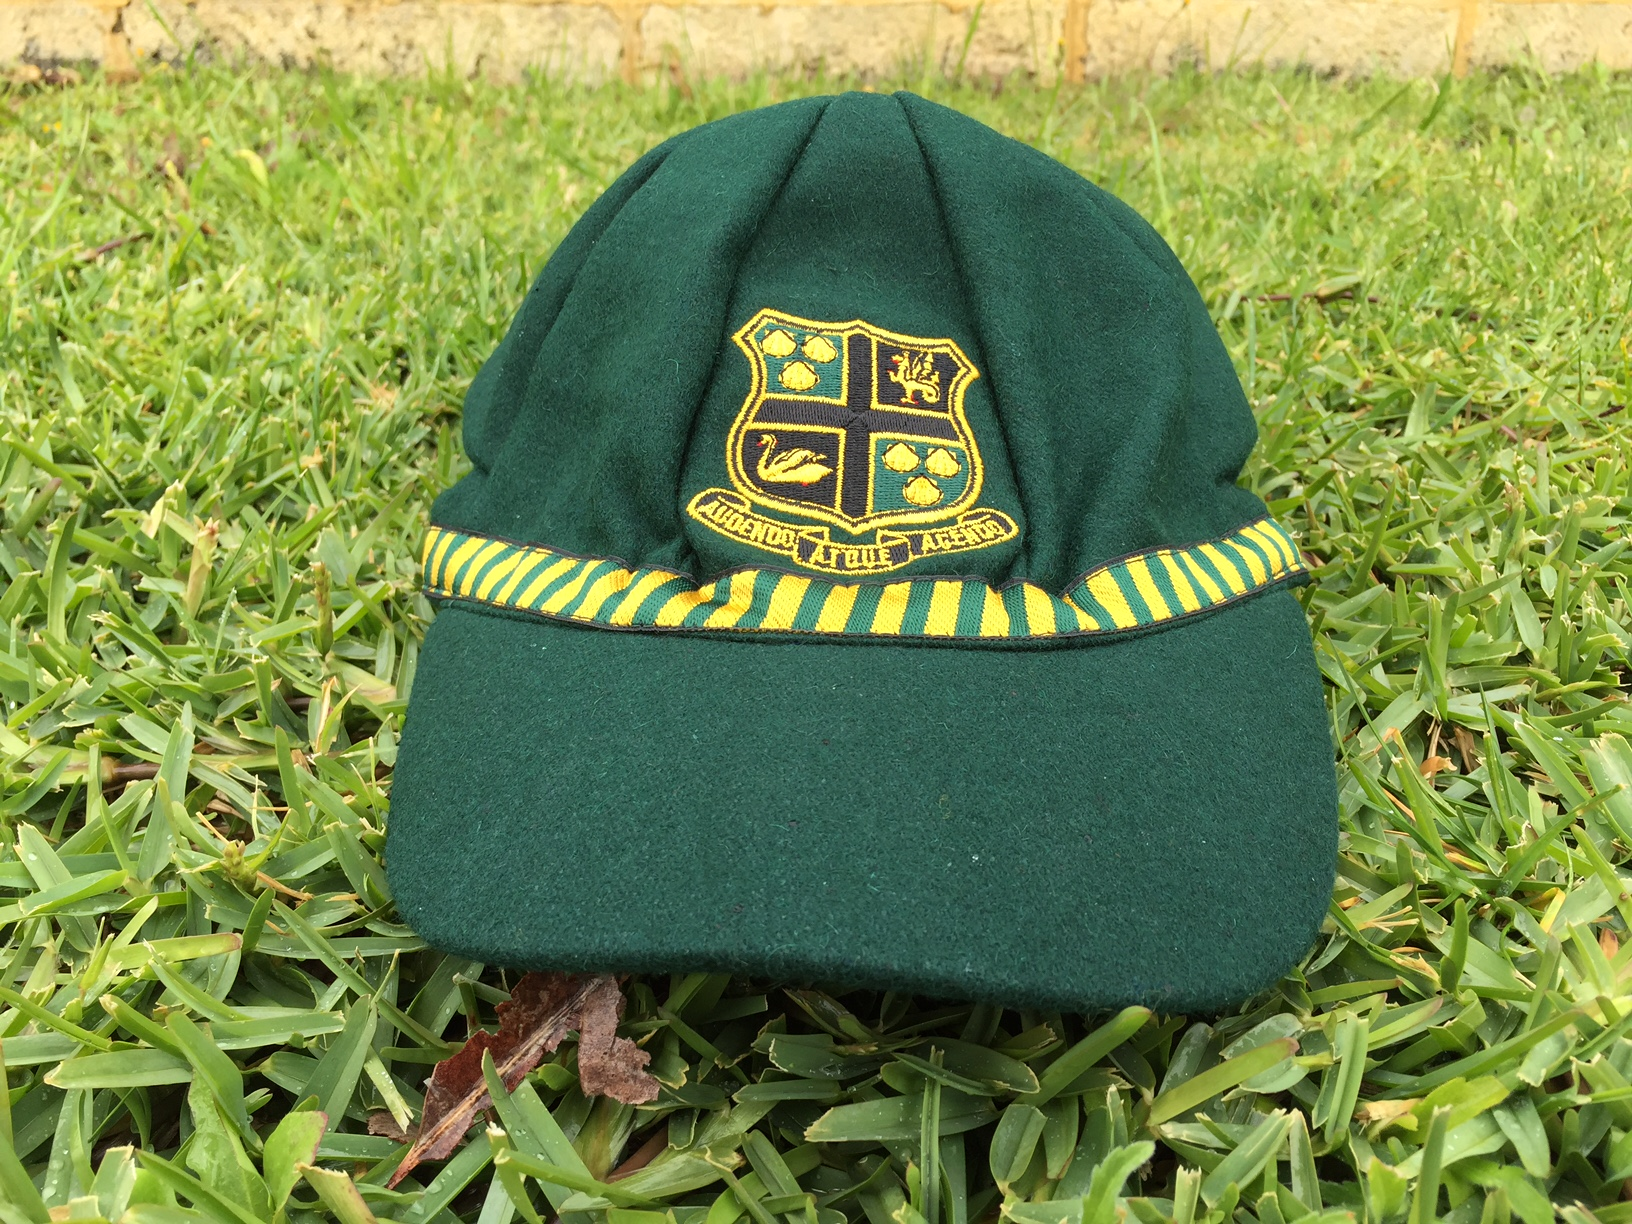 Wesley College 1st 11 Caps